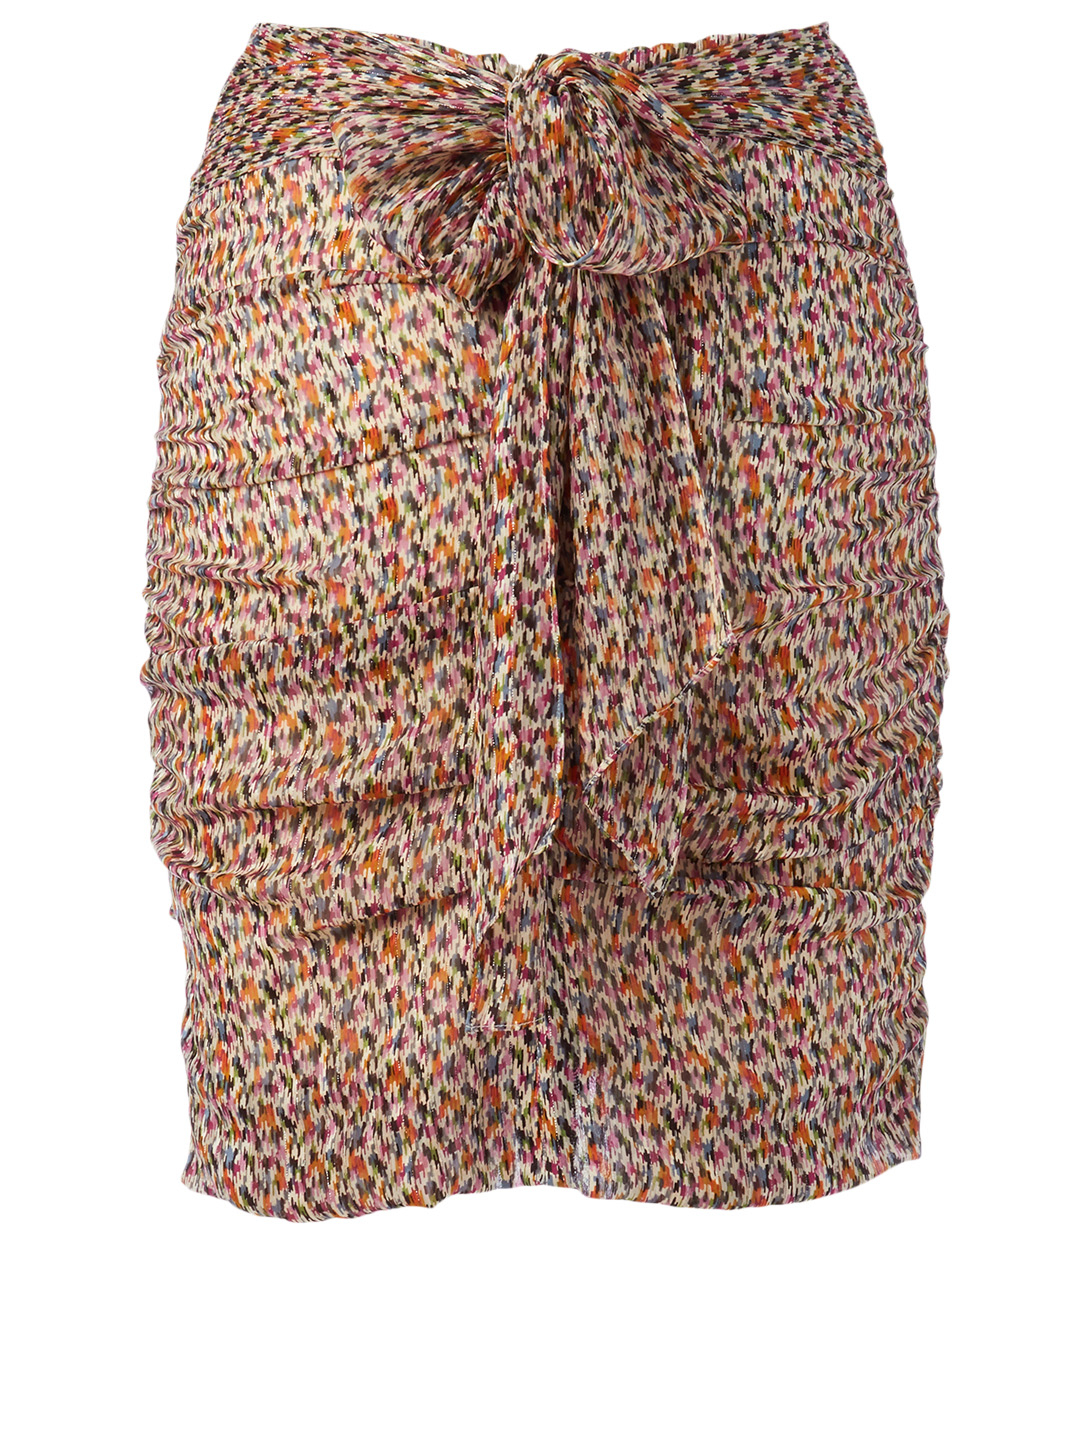 BA&SH Dina Silk-Blend Printed Skirt Women's Beige